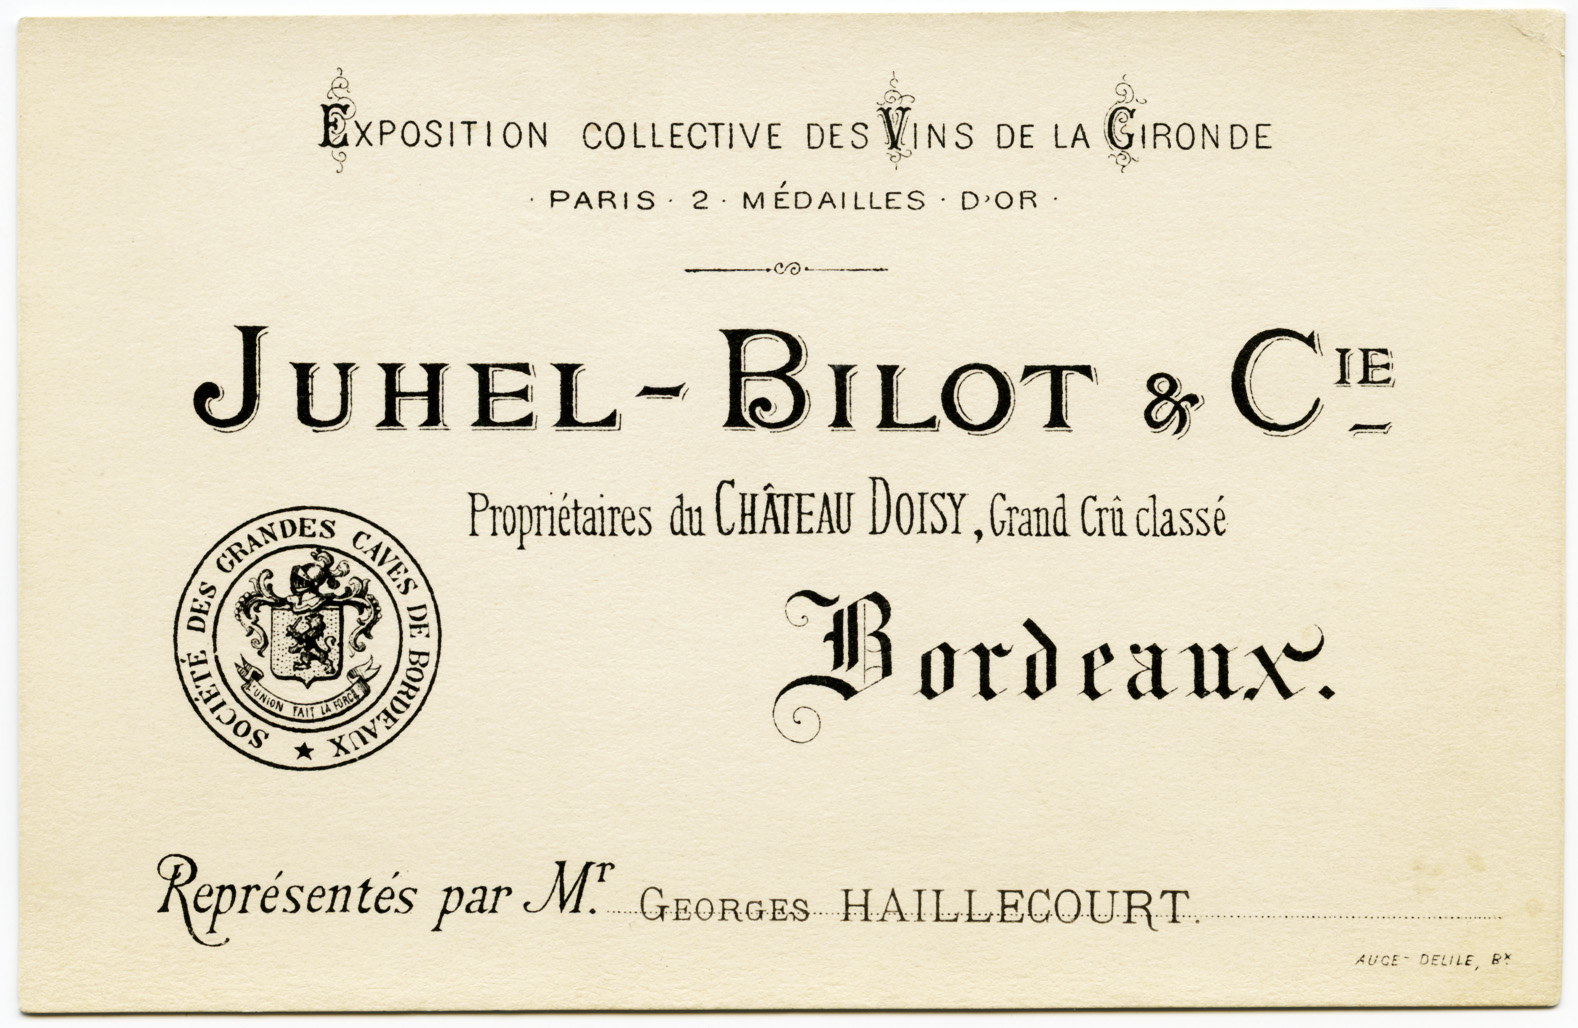 Vintage French Business Cards Gallery - Card Design And Card Template